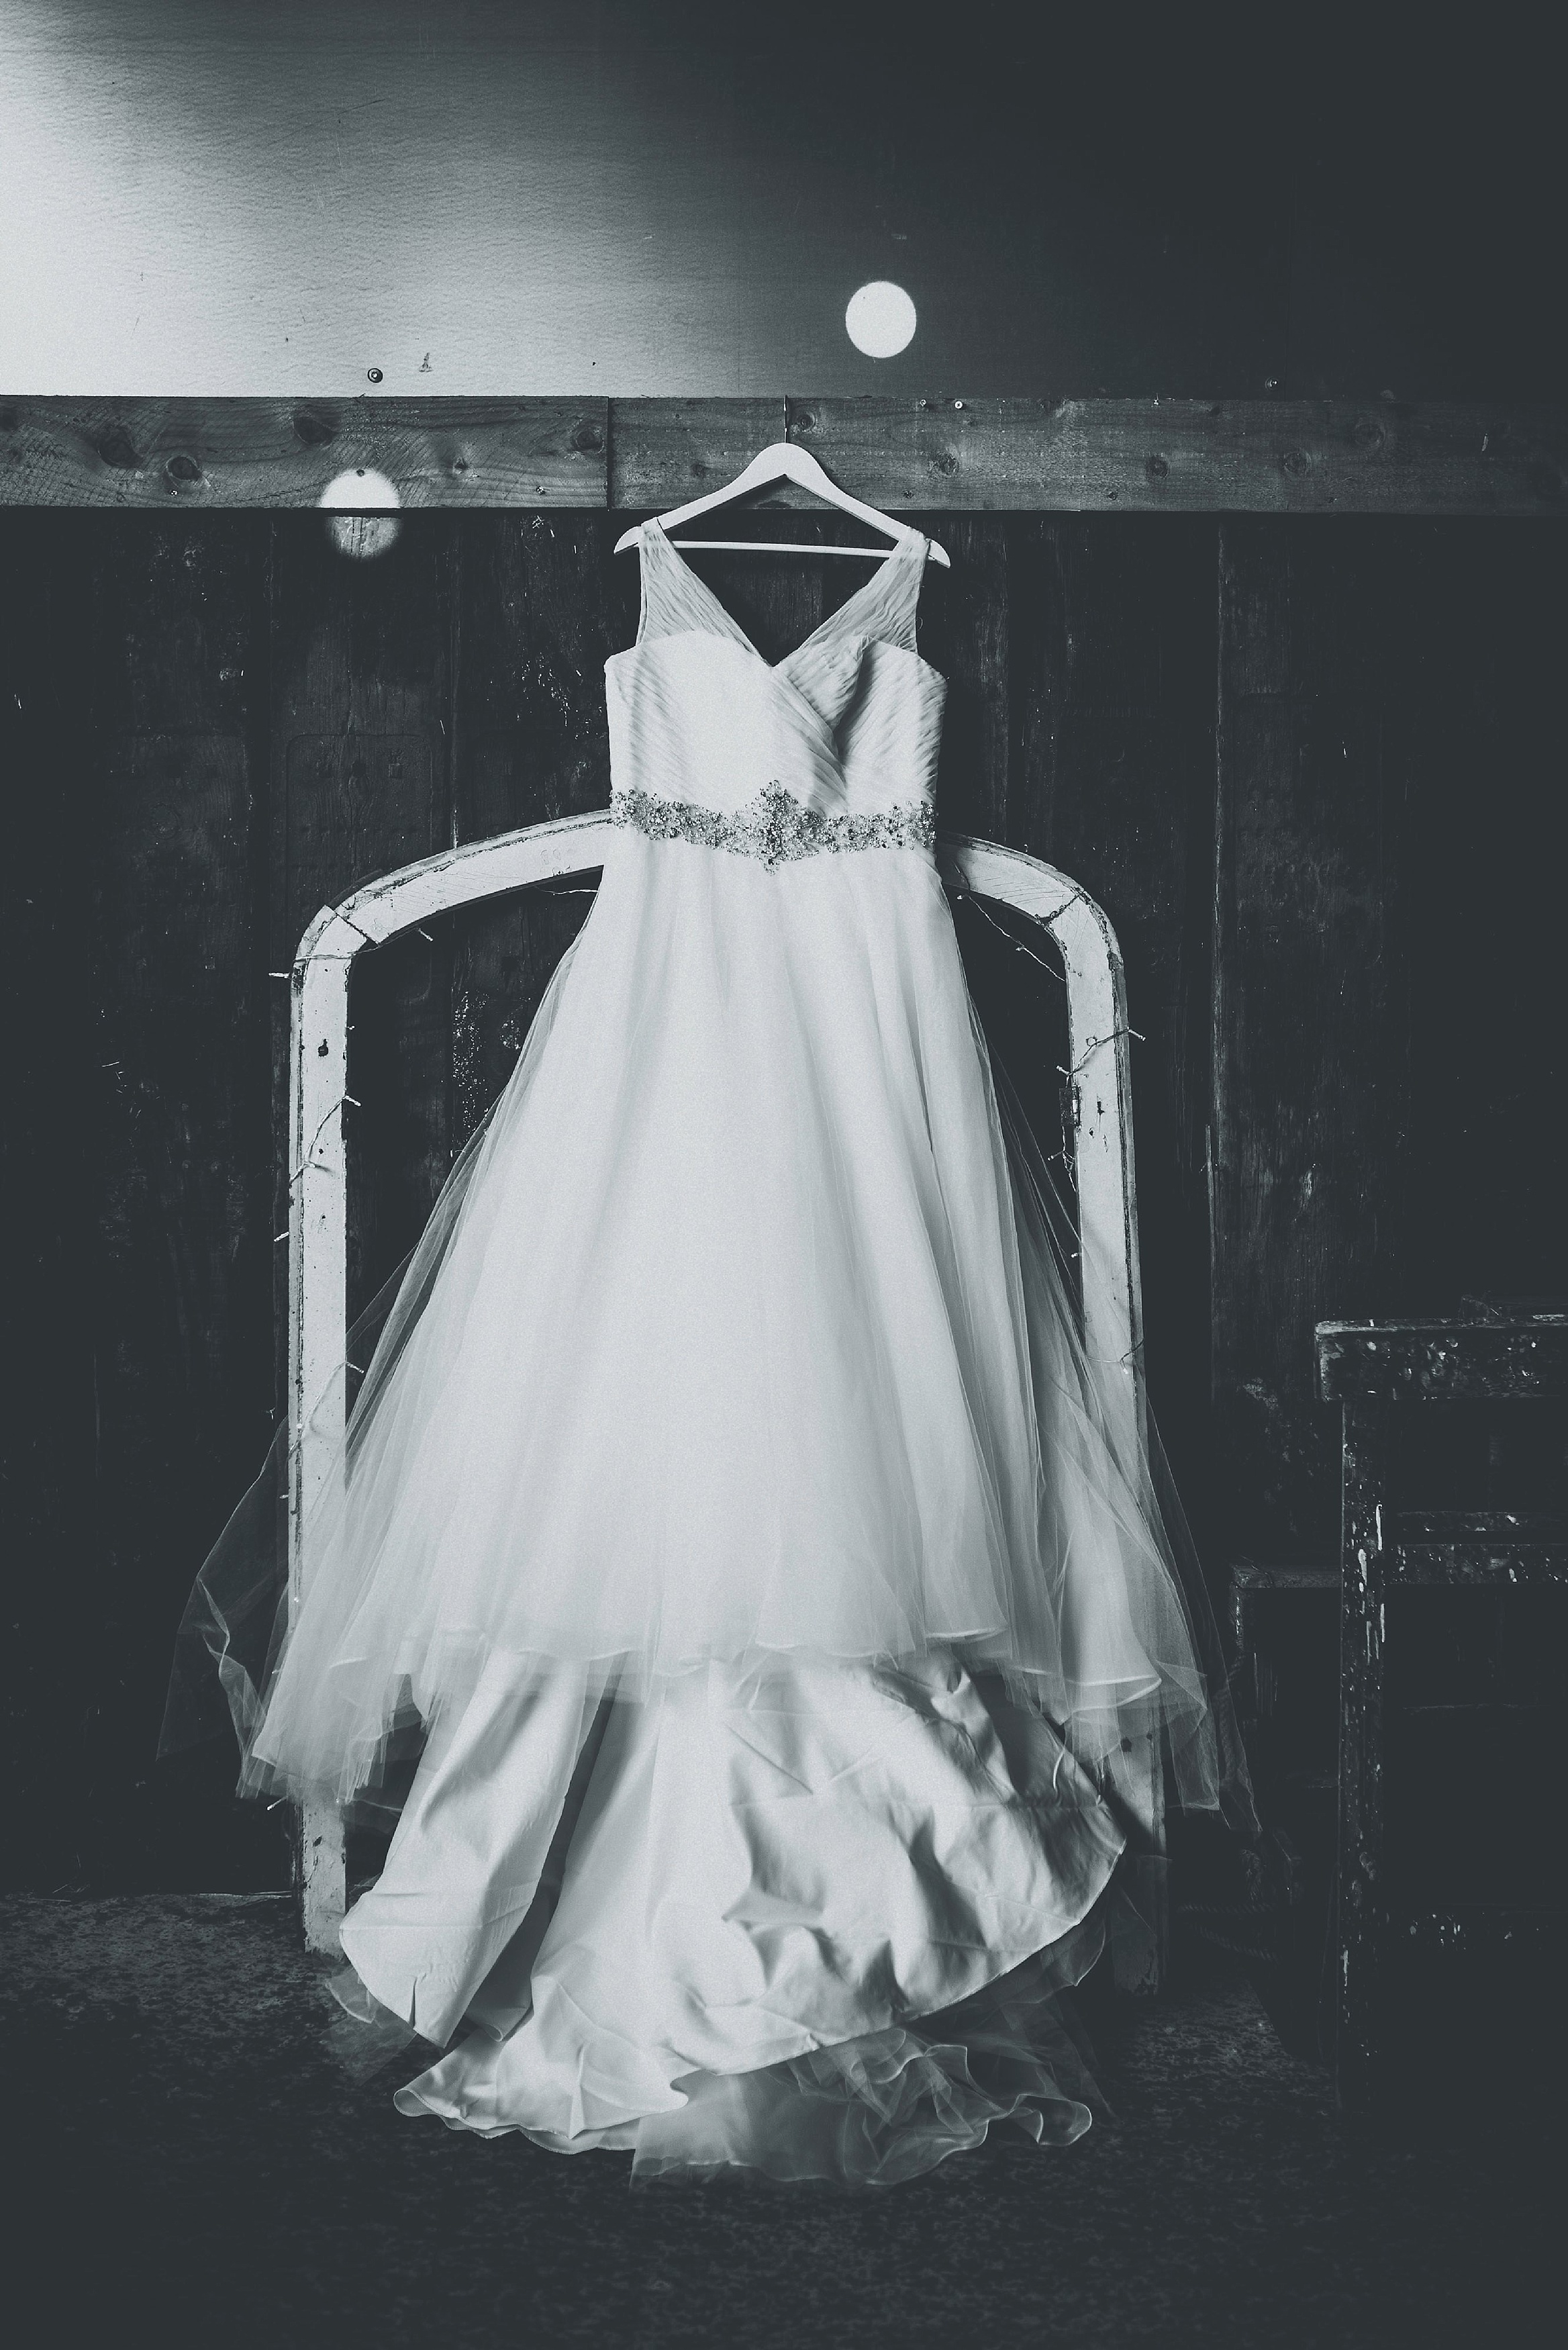 Wedding Dress at a Cheshire Barn Wedding